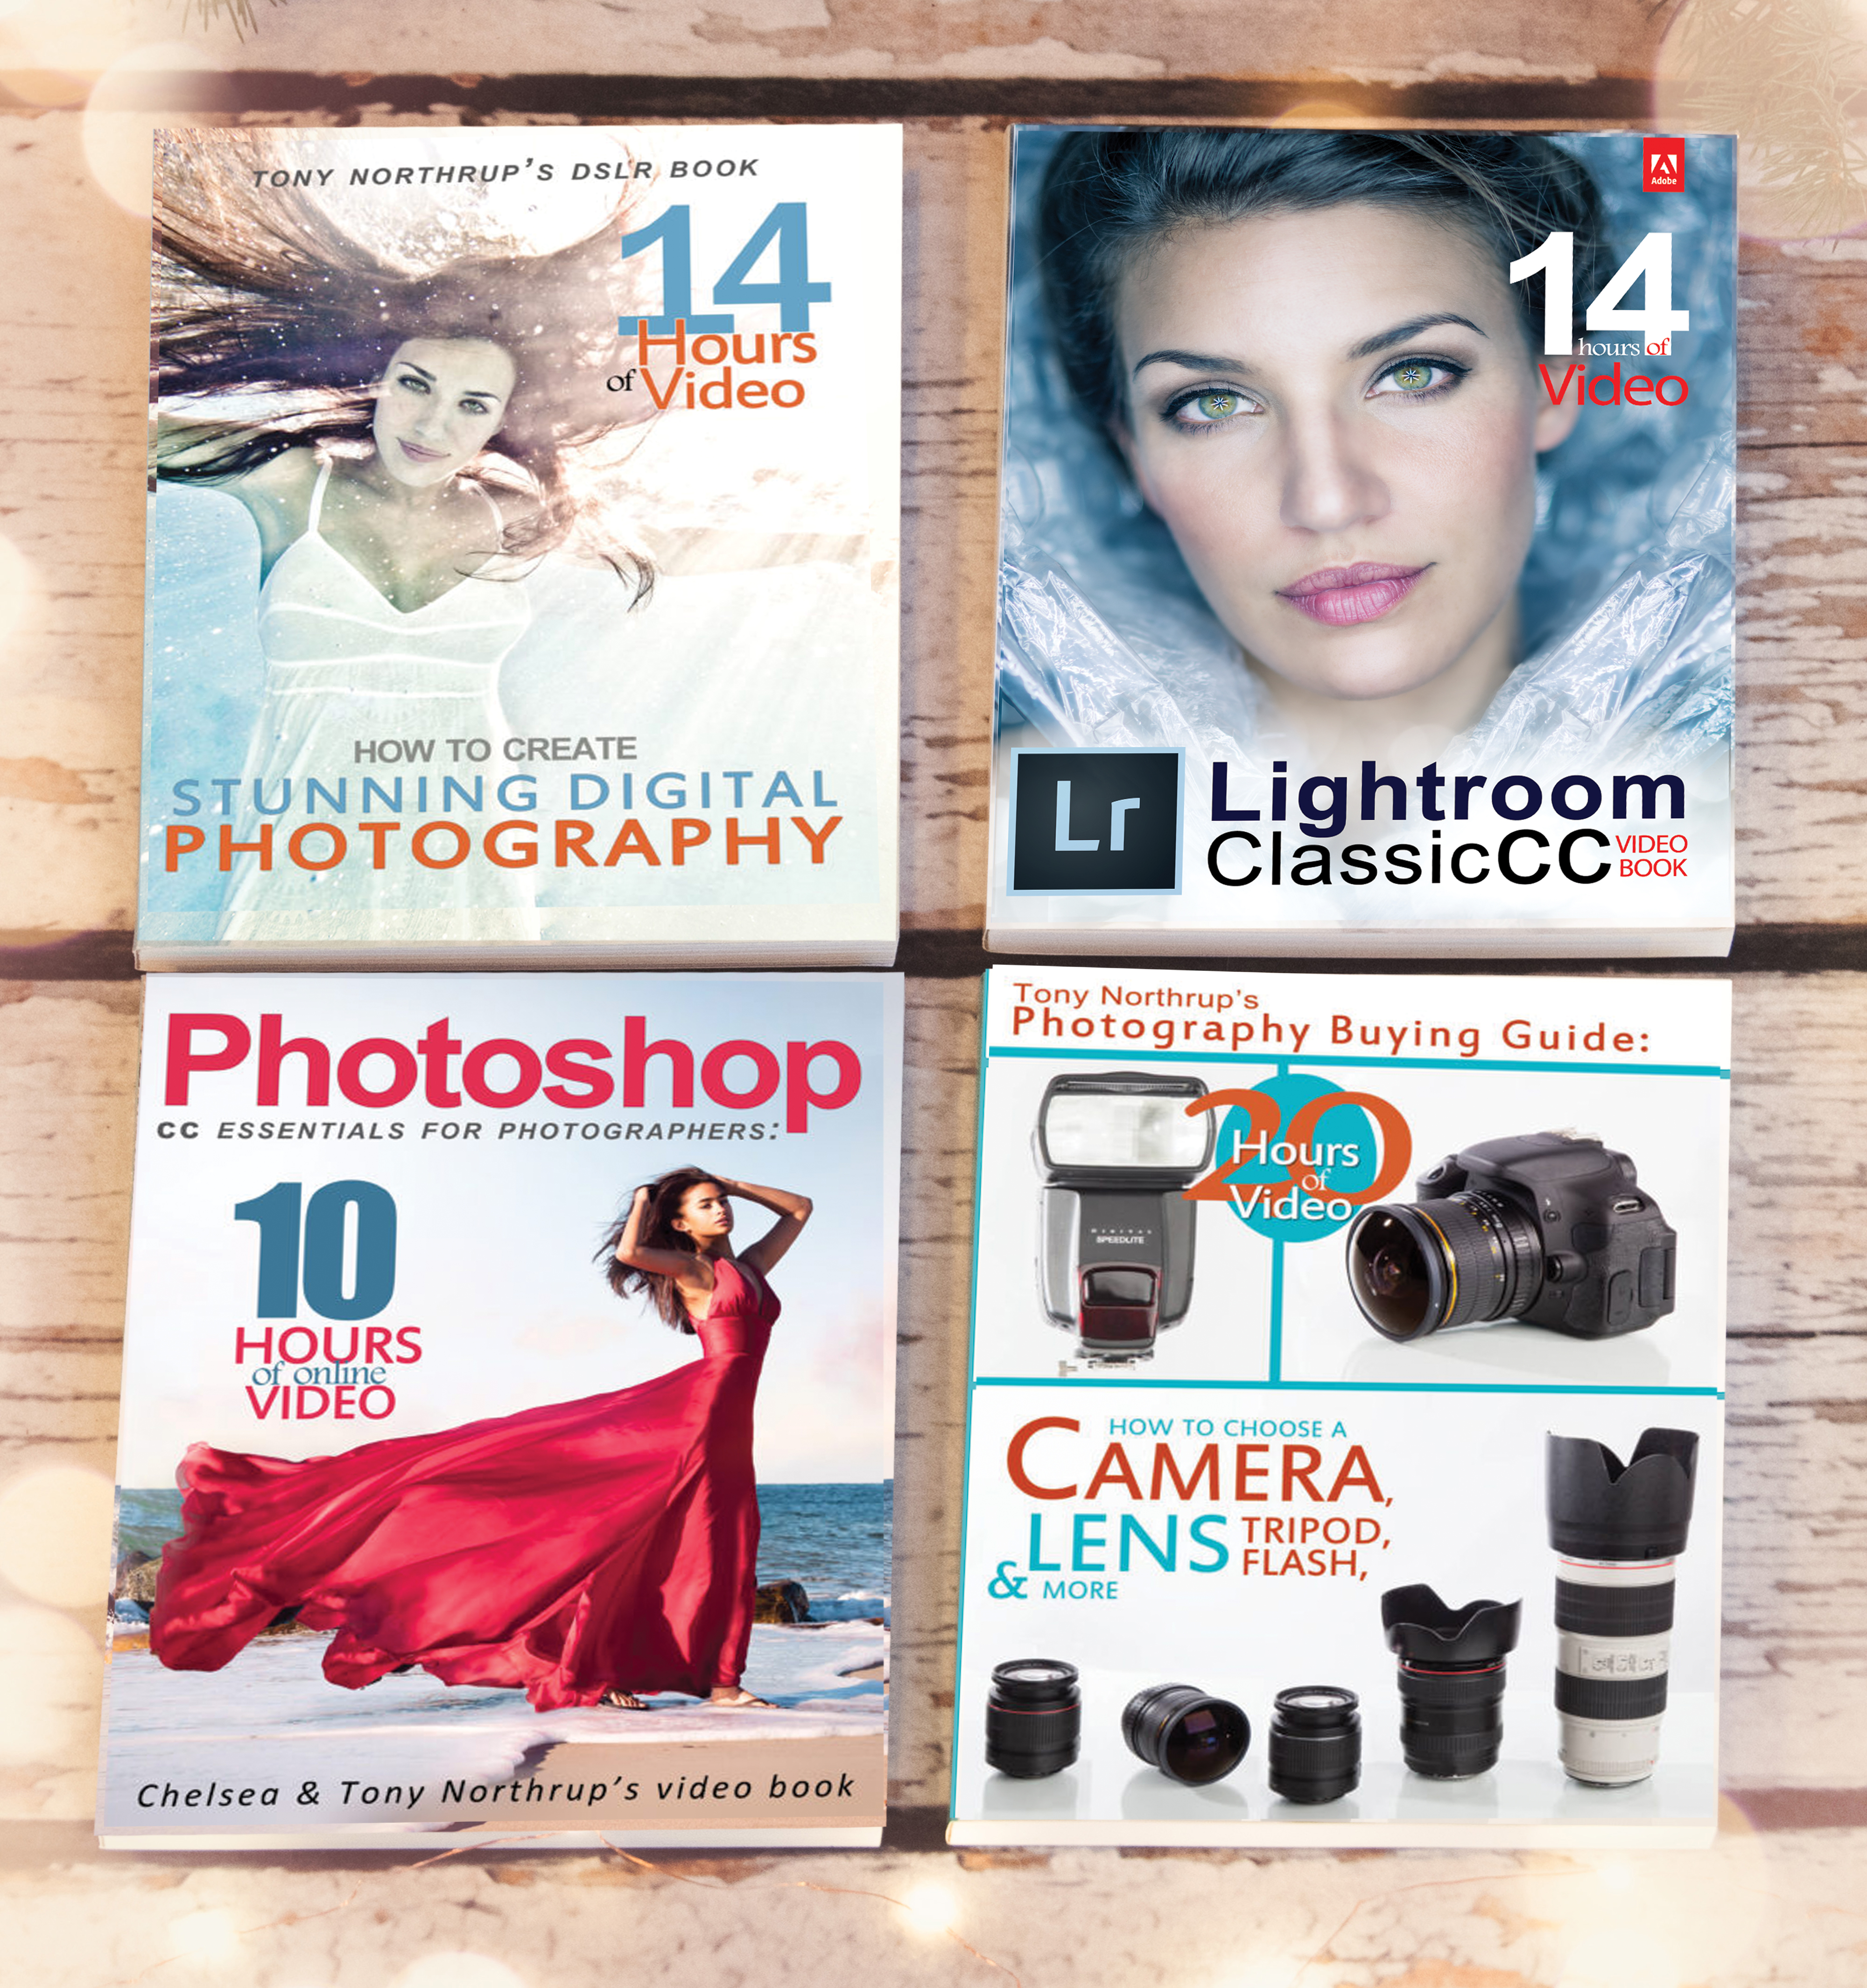 tony northrup stunning digital photography free download torrent